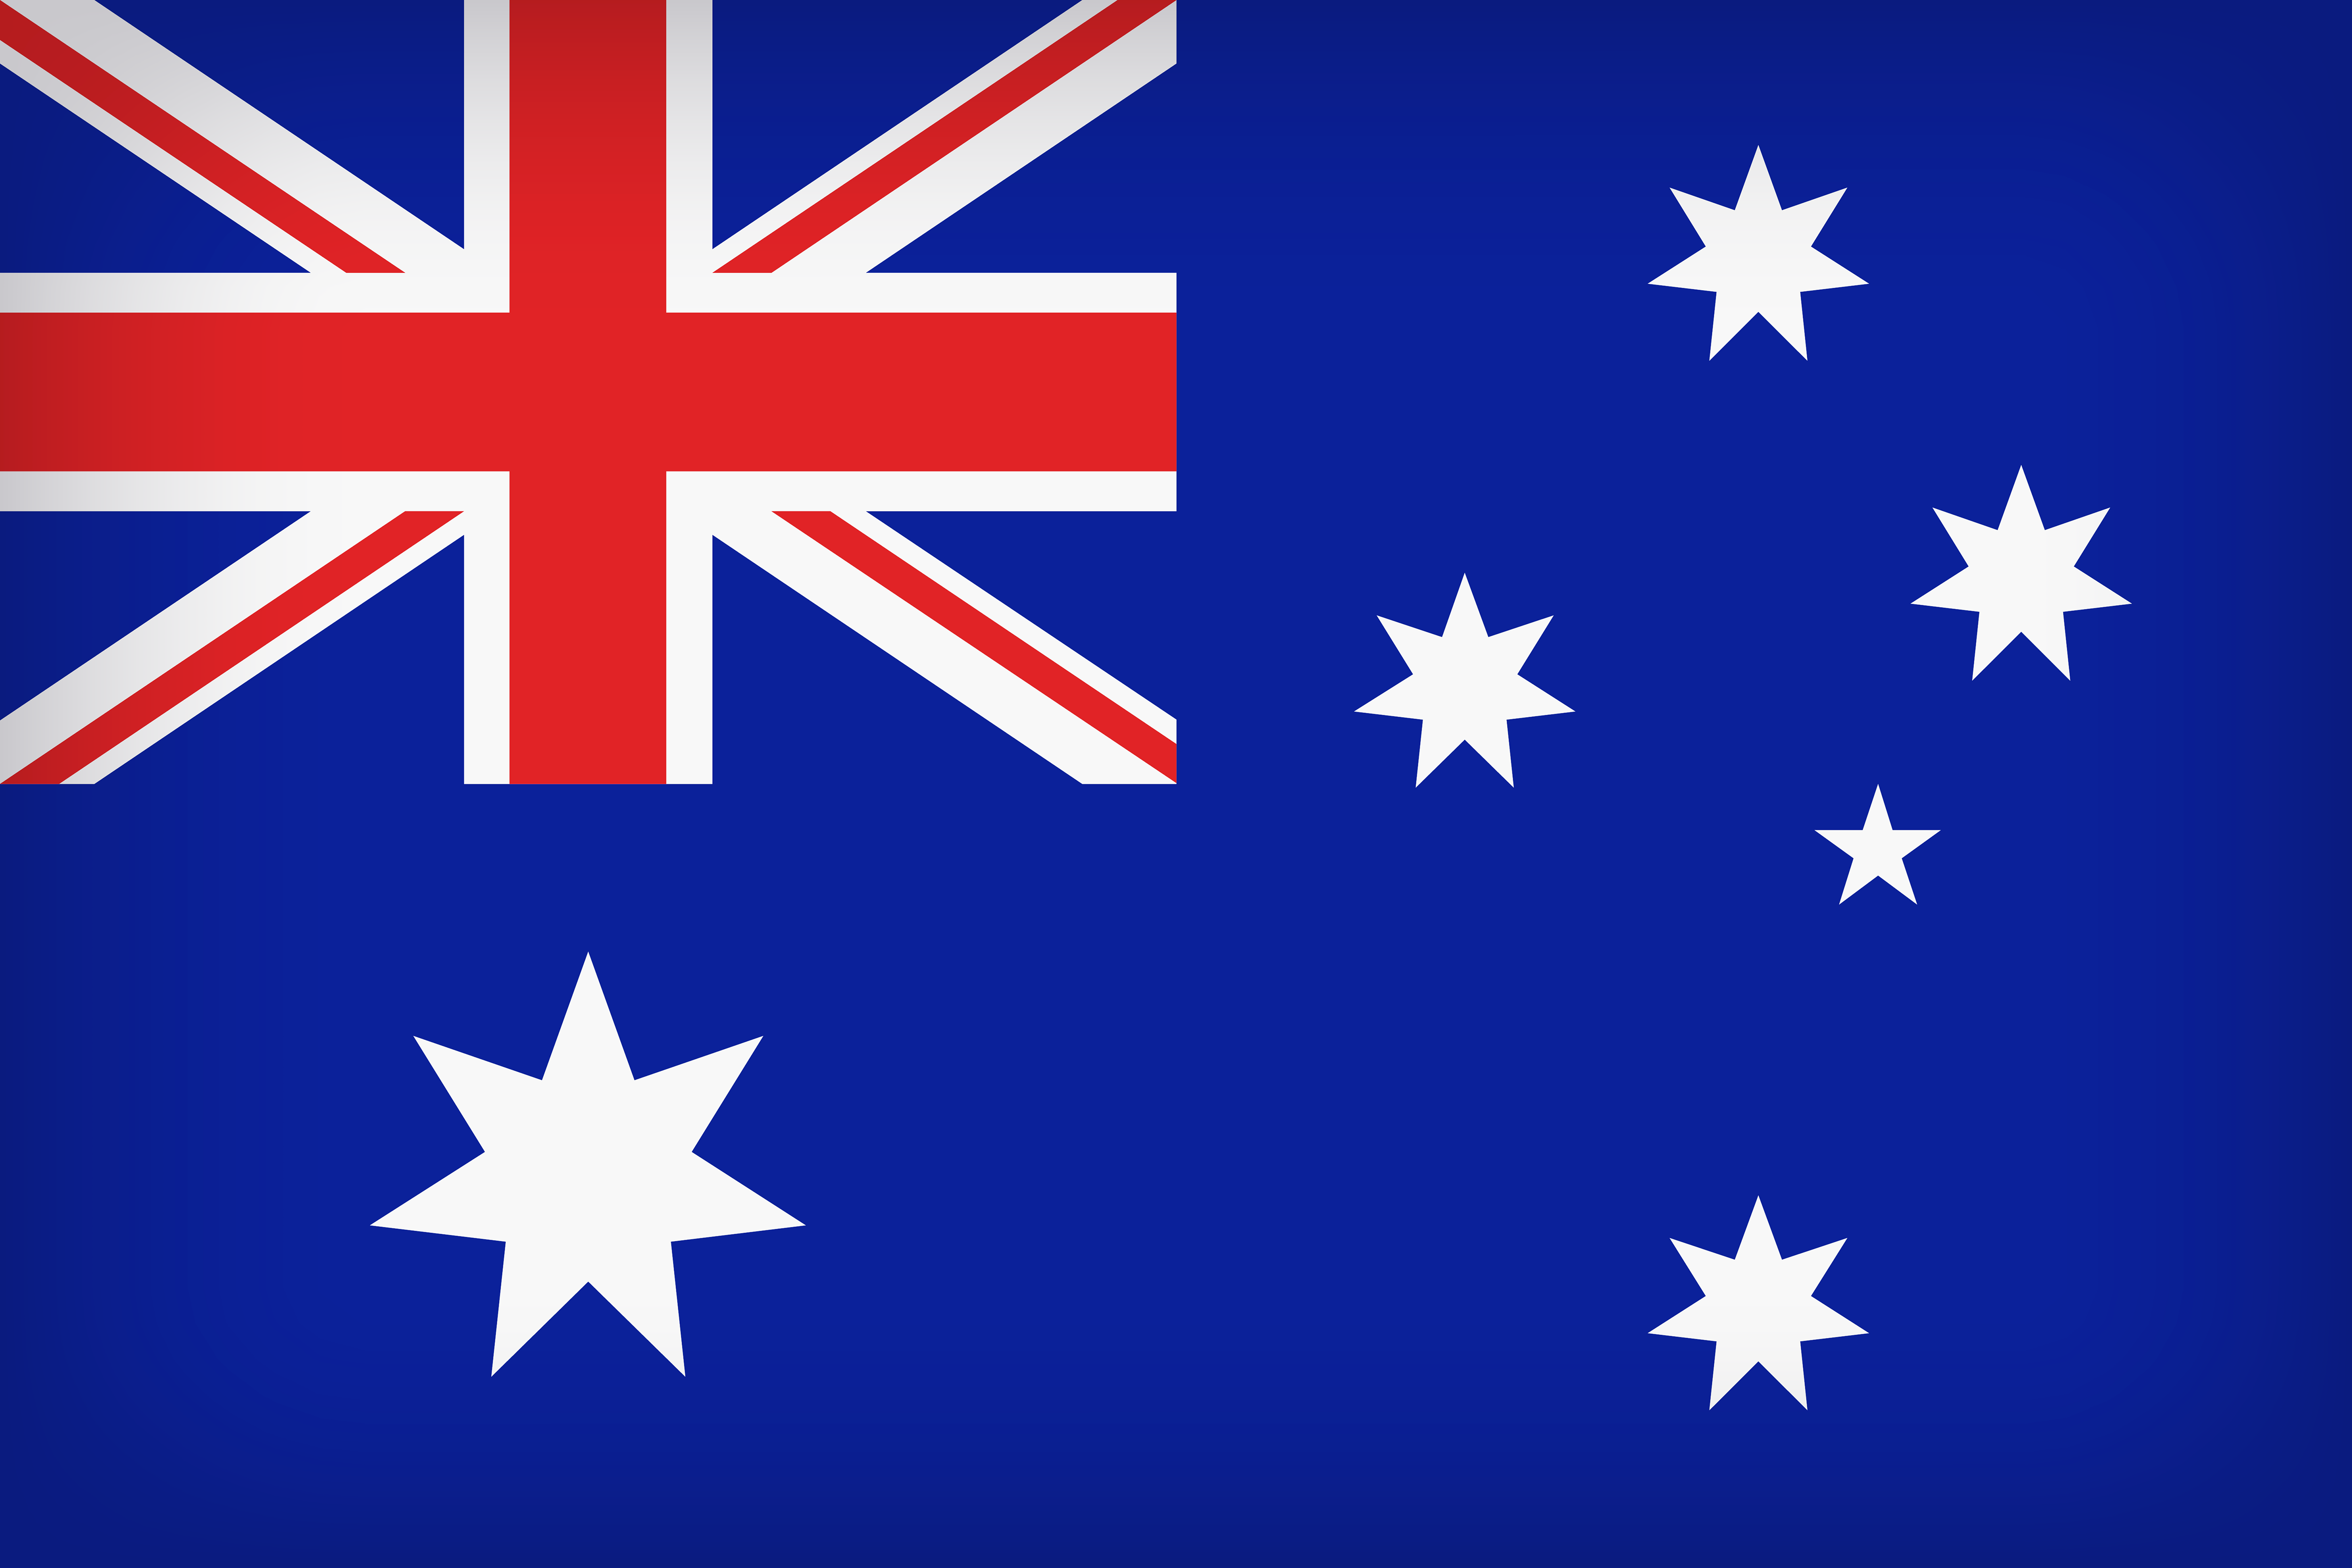 Australia clipart large. Flag gallery yopriceville high